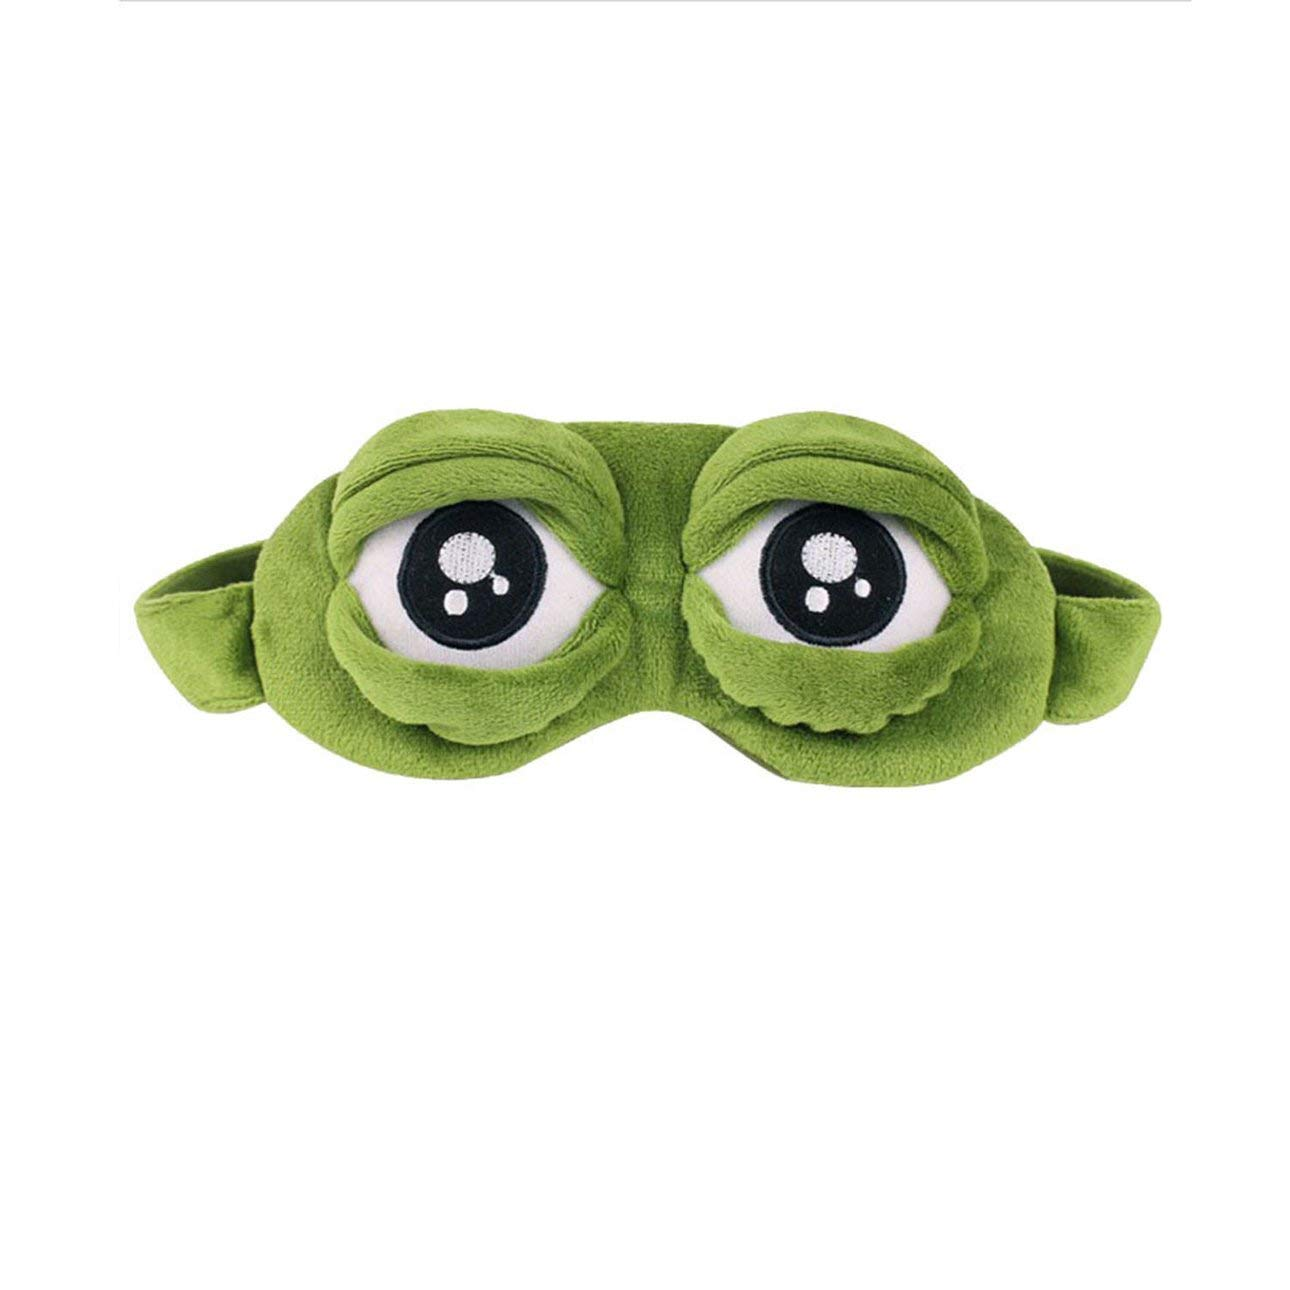 Liobaba Lovely Frogs Eyes Sleeping Eye Mask Elastic Bandage Eyeshade Cover Eyepatch Blindfolds For Flight Travel Office Night Sleep